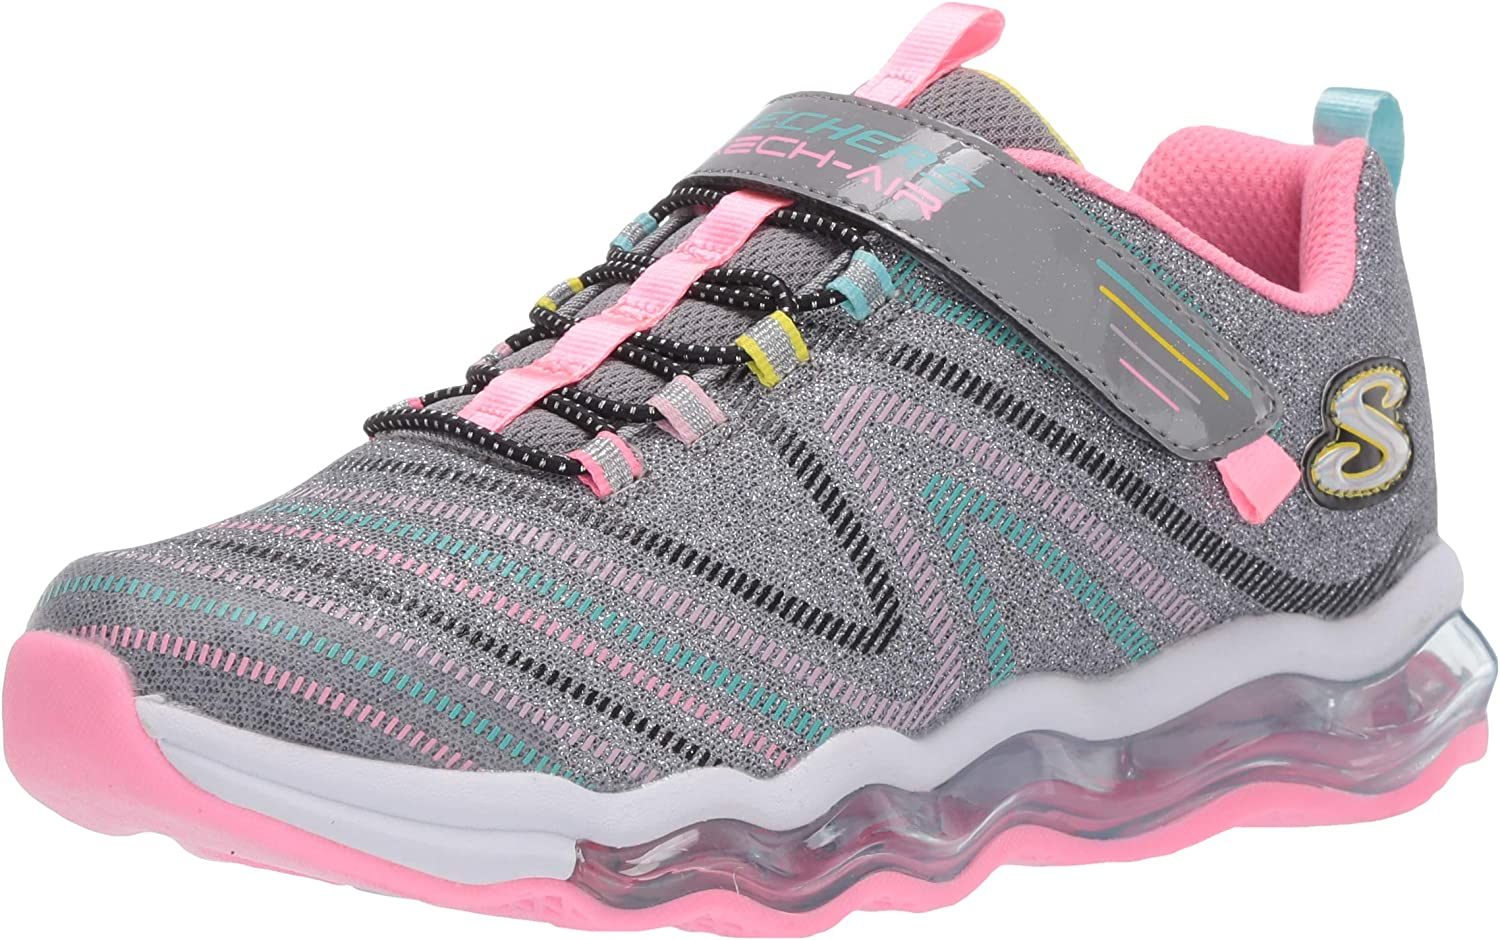 Skechers Challenge Colorado Springs Mall the lowest price of Japan Unisex-Child Skech-air Sneaker Wavelength